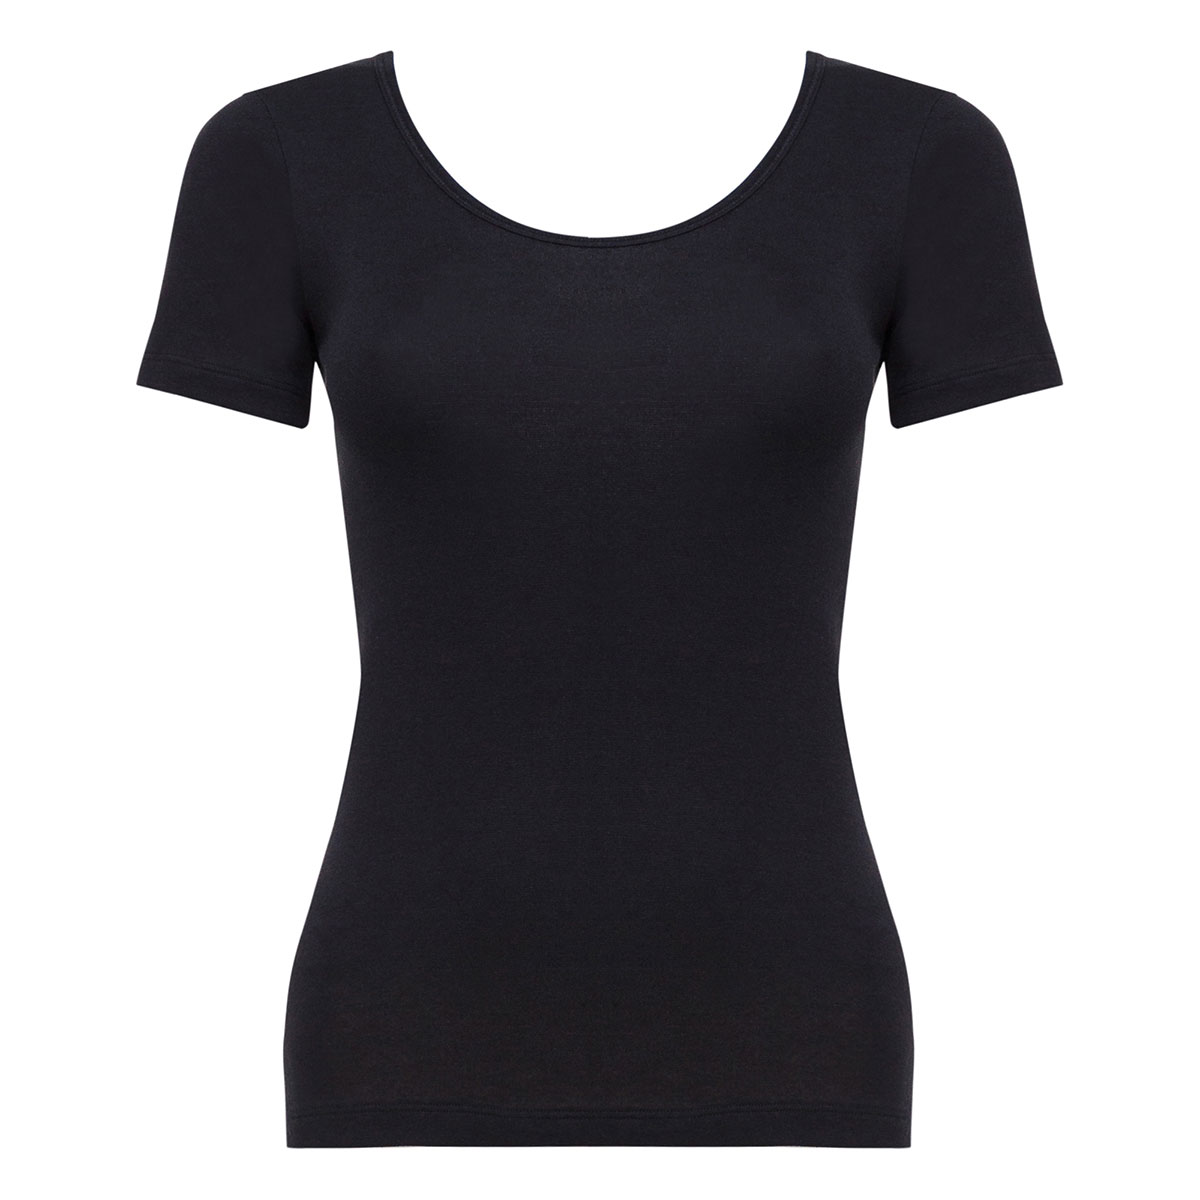 Short Sleeve Top in Black - Cotton Liberty -PLAYTEX